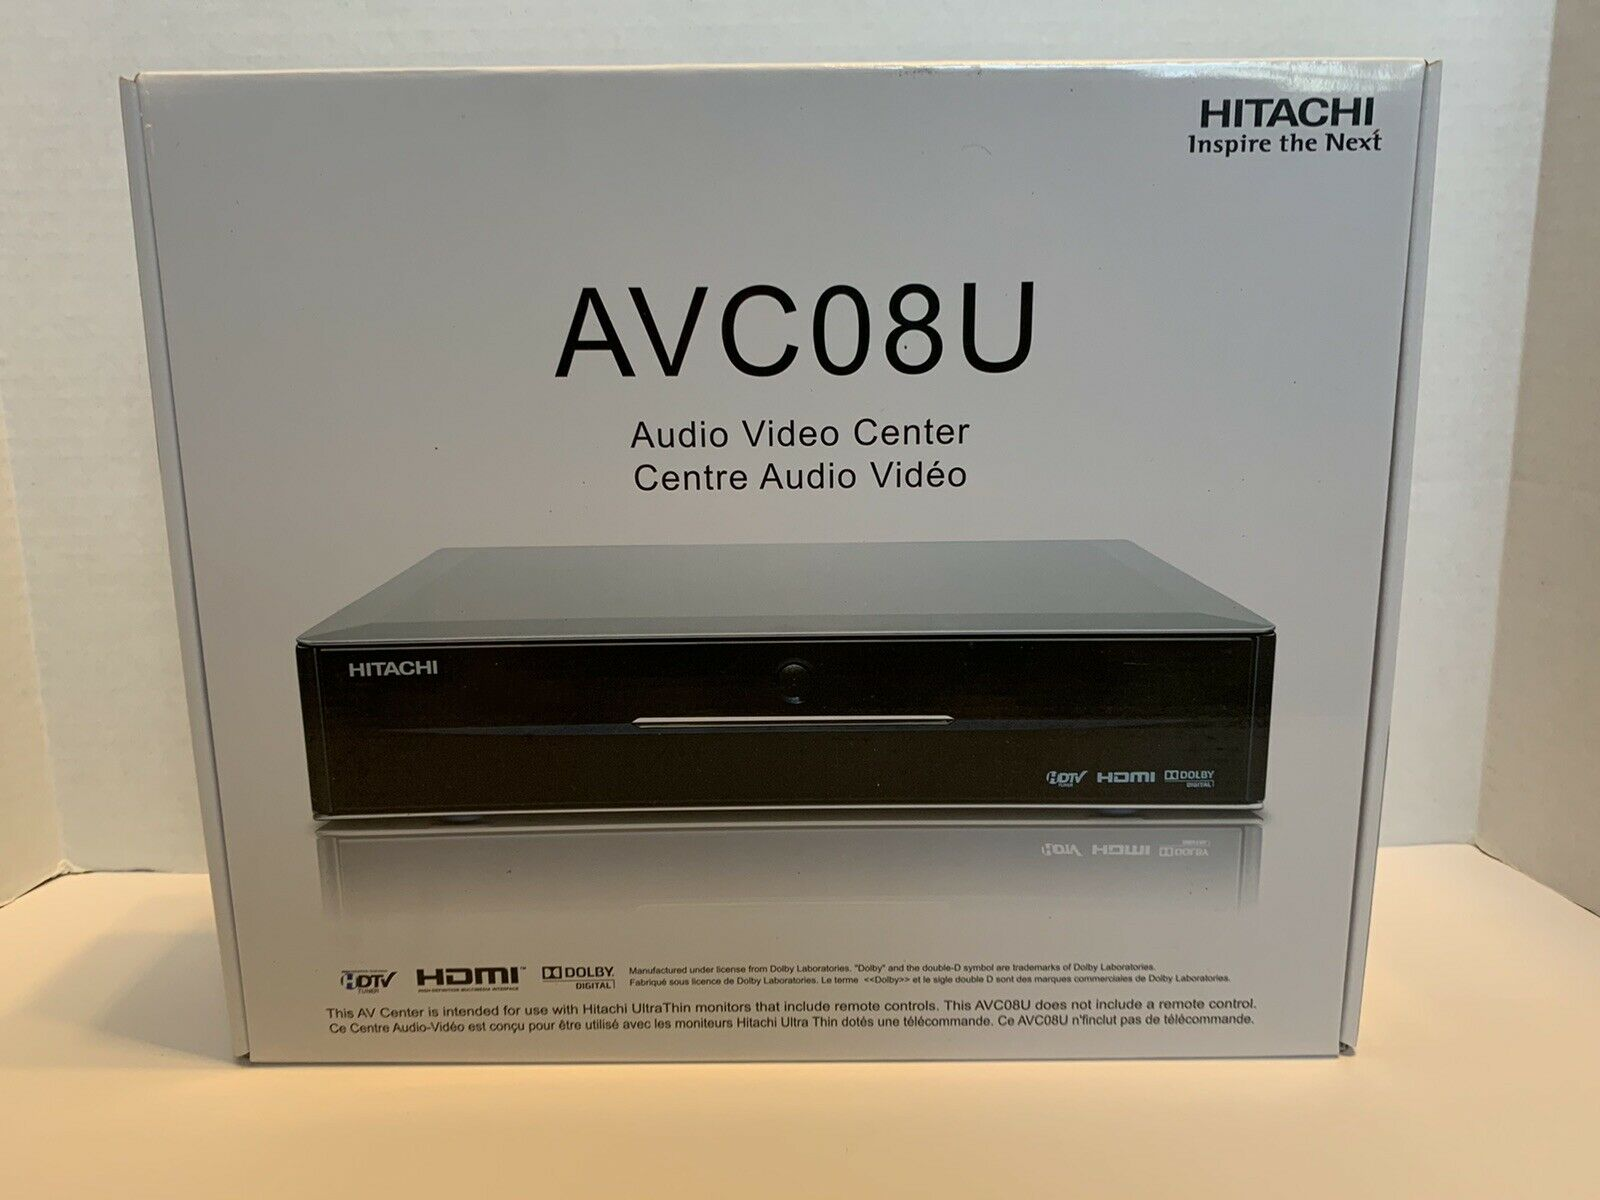 Brand New Hitachi Avc01u Audio Video Control Center With Original Box And Manual For Sale Online